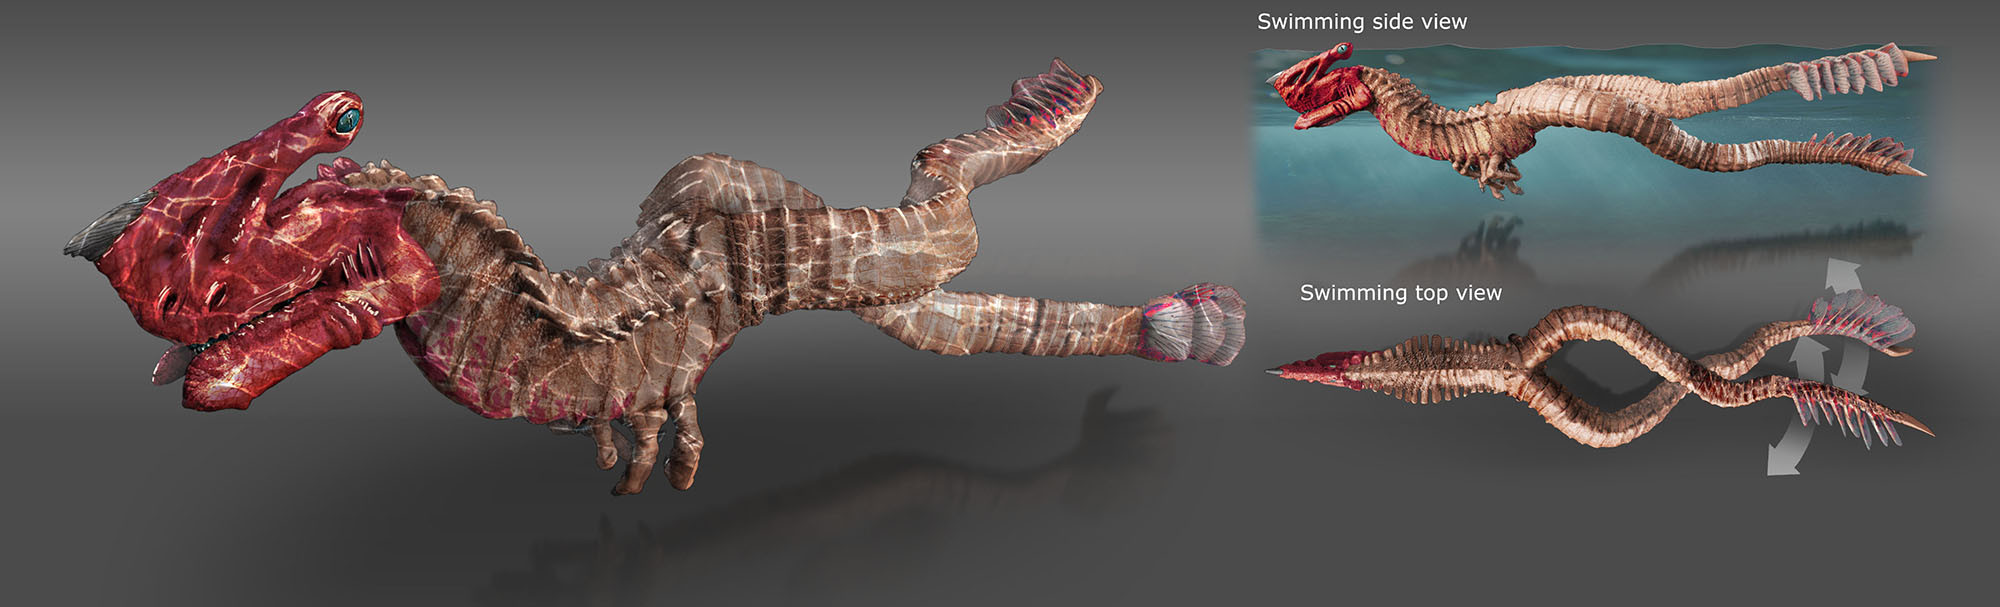 Grimm Odds - Gore-Head Gator - Swimming Pose